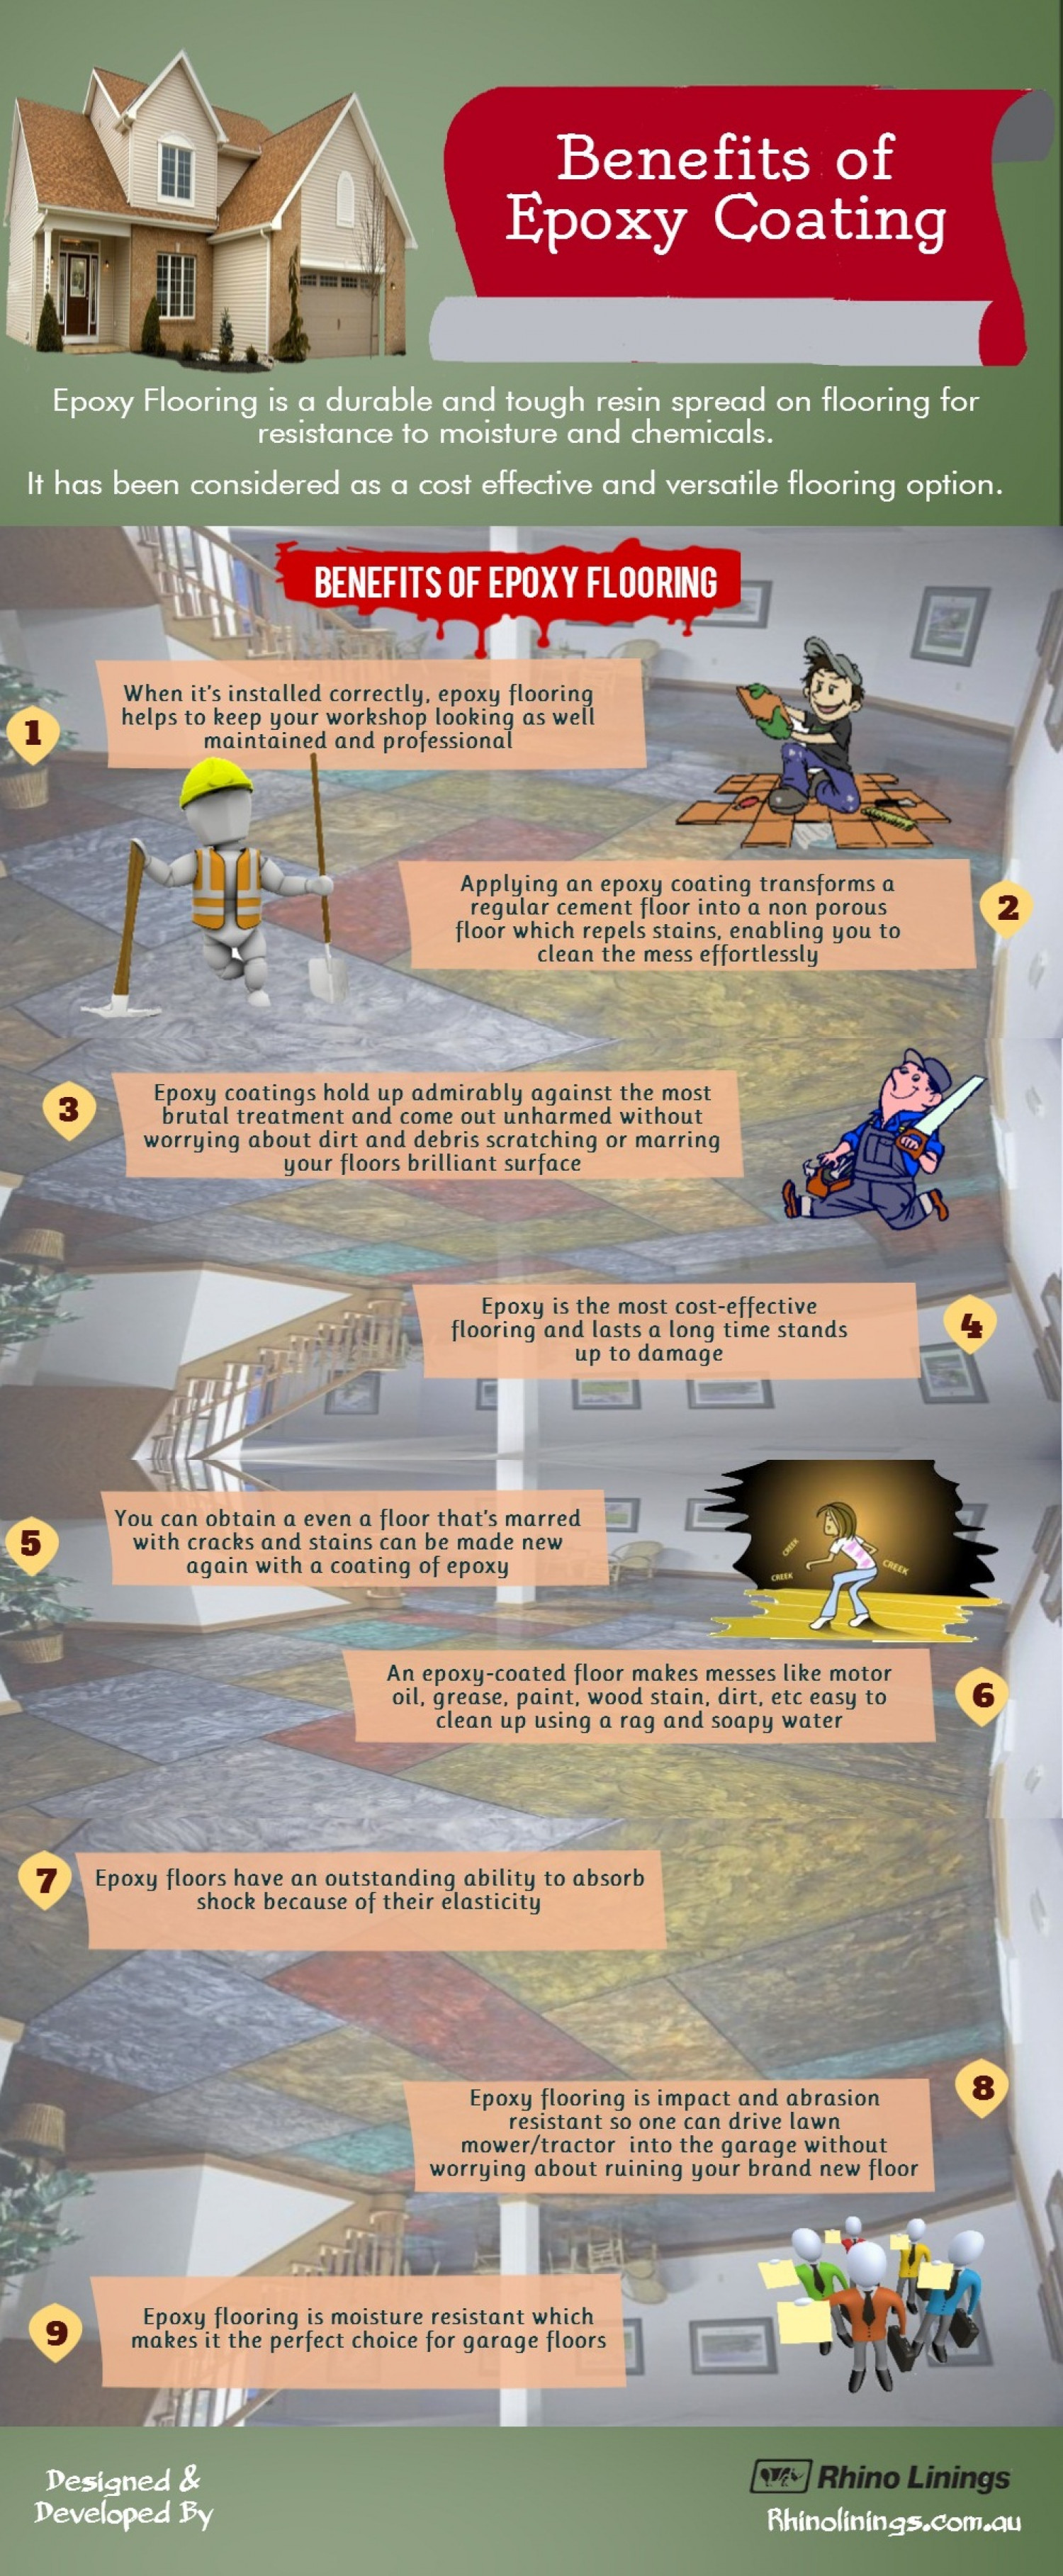 Benefits Of Epoxy Flooring  Visual. Duro Last Roofing Cost Ortho K Contact Lenses. Nj School Board Elections Best Dental Crowns. Lpn To Bsn Bridge Programs At And T Packages. I Want To Move To California Schools In Ny. Aurora Personal Injury Attorney. How Much Can I Qualify For A Home Loan. First Domain Registered Locksmith Palos Verdes. Smoke Damage Restoration Tips